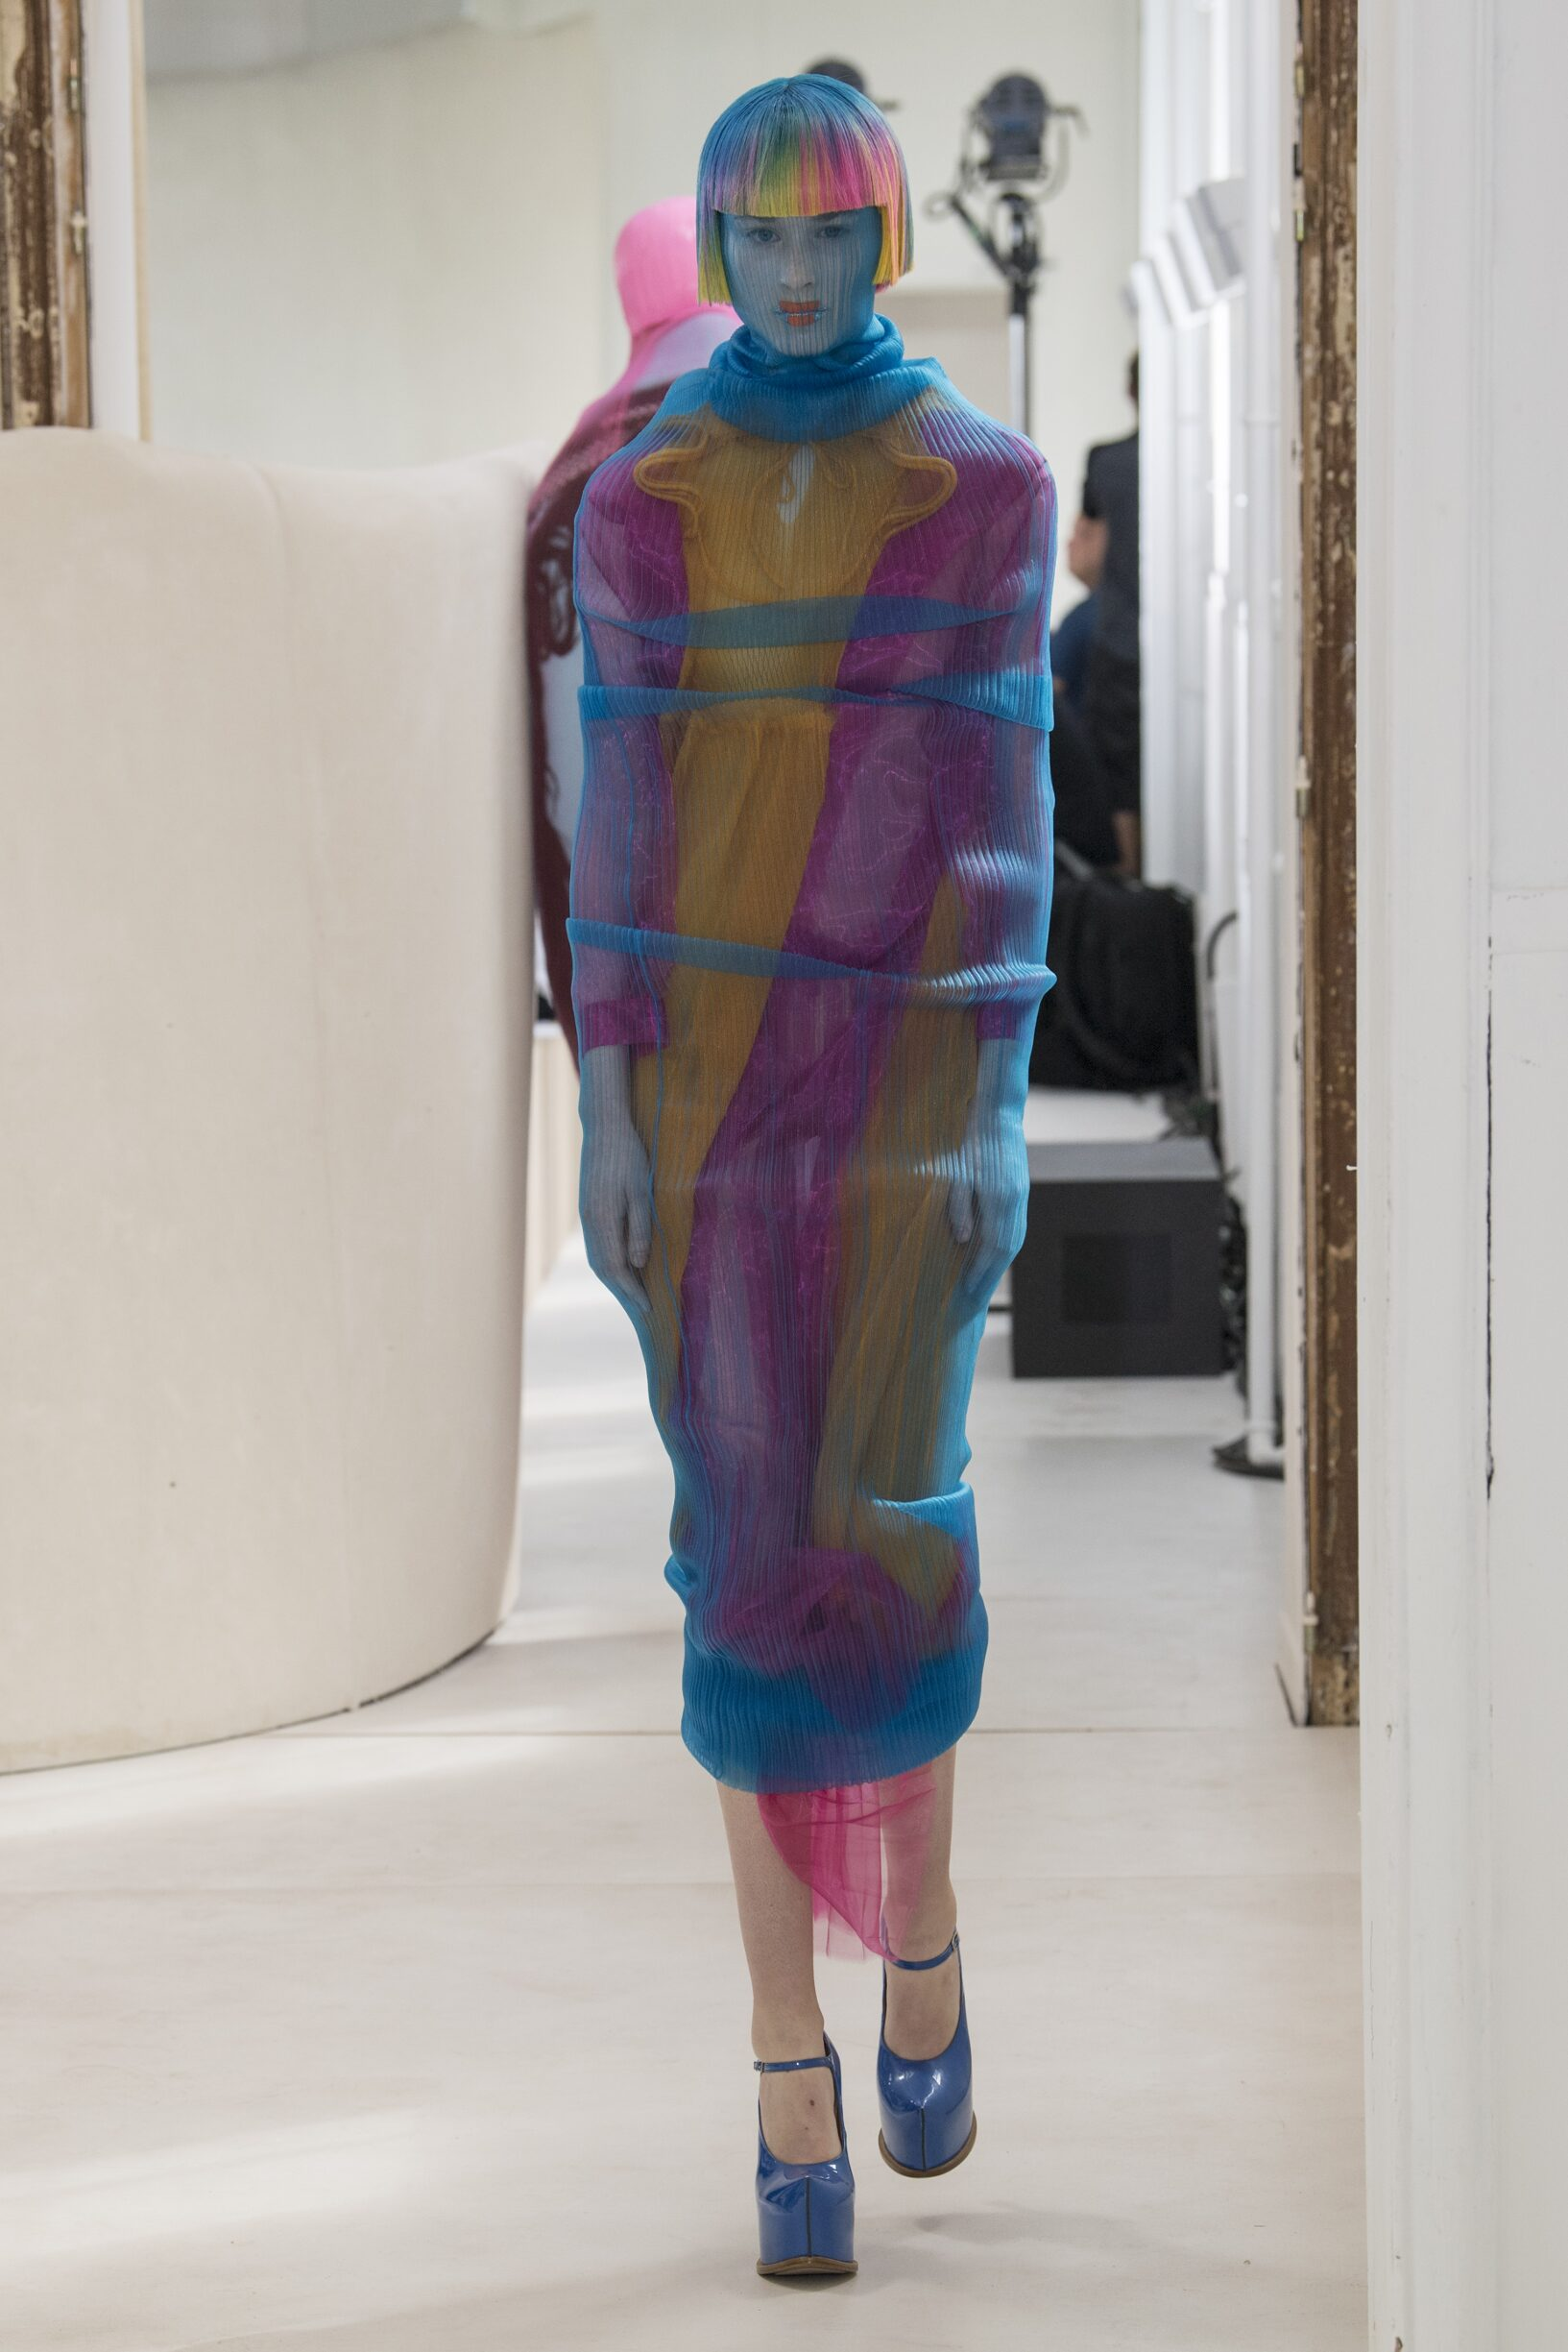 Maison Margiela Artisanal Fall Winter 2018